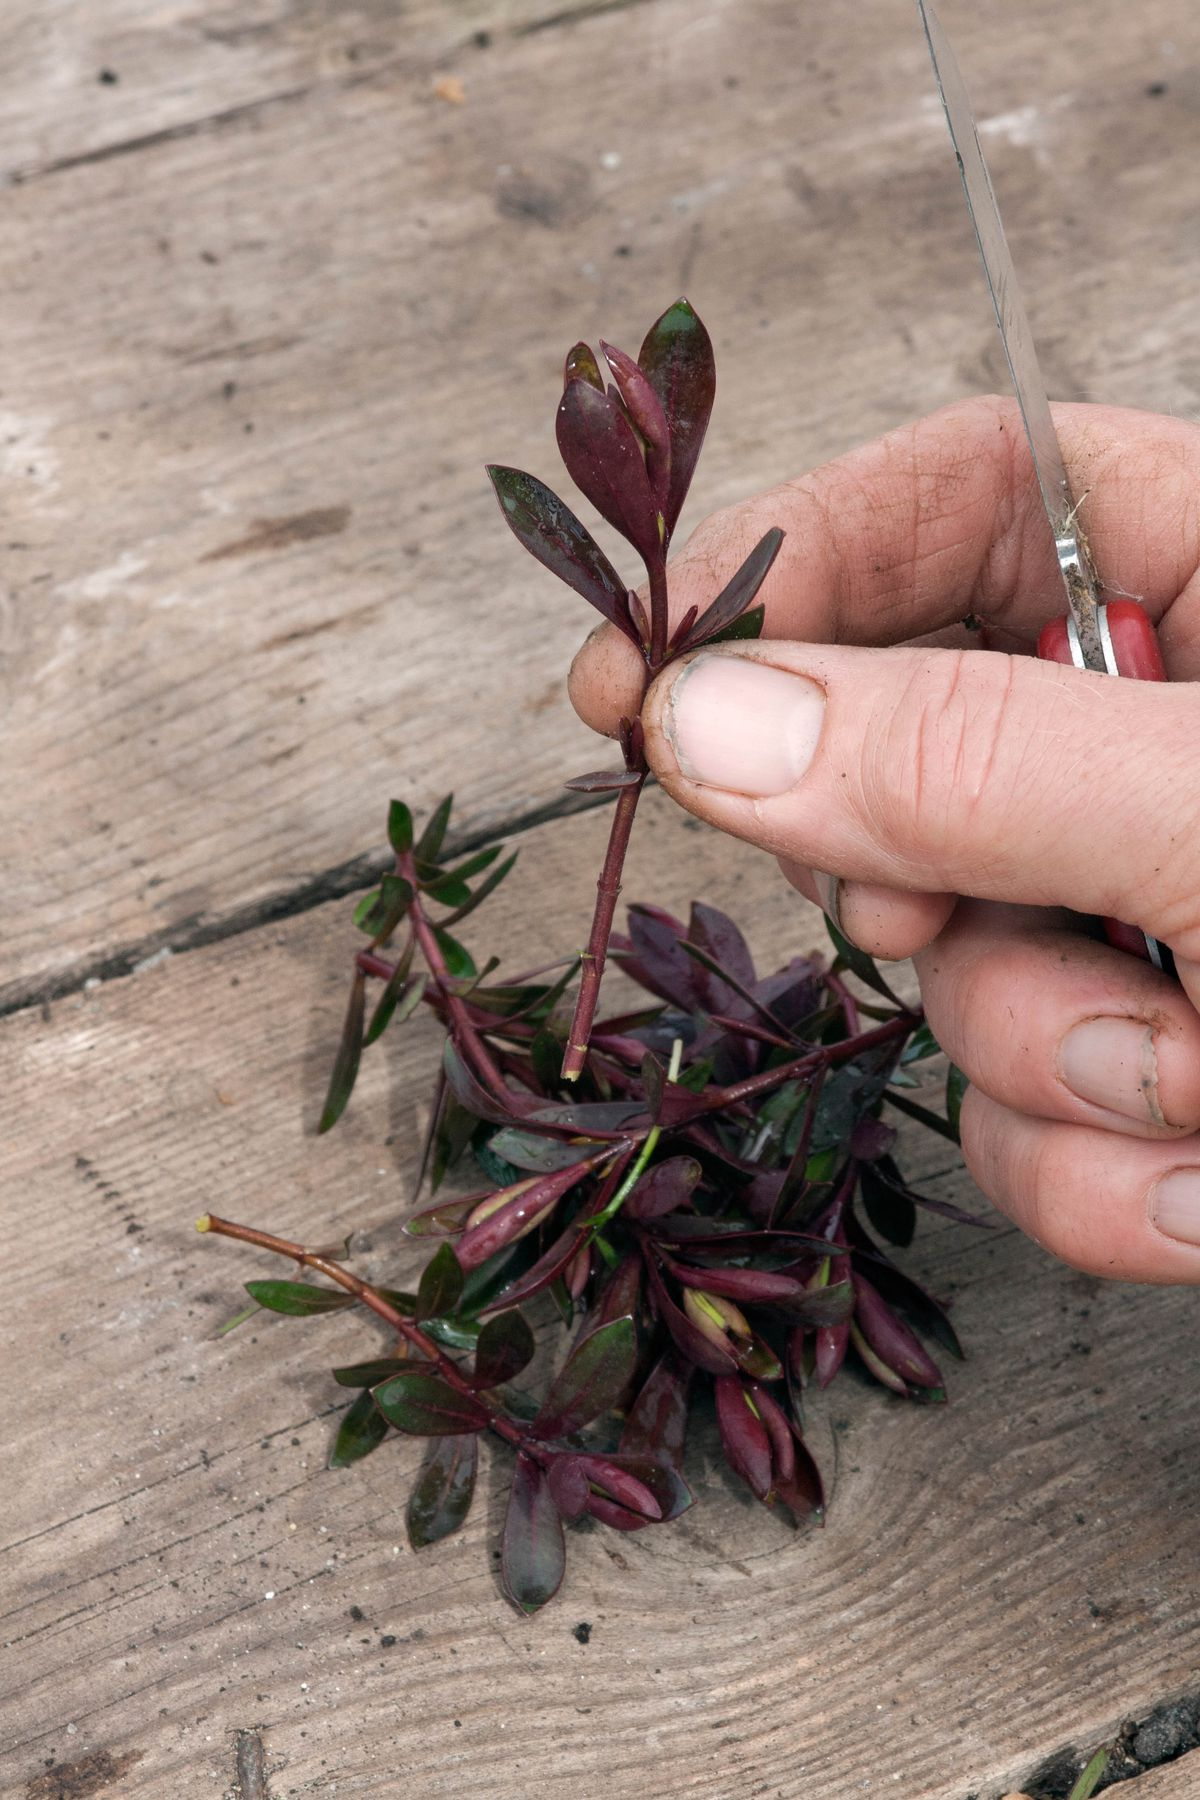 Taking cuttings of Hebe in order to propagate. hand holding scissors and striping off the lower leaves of the plant.